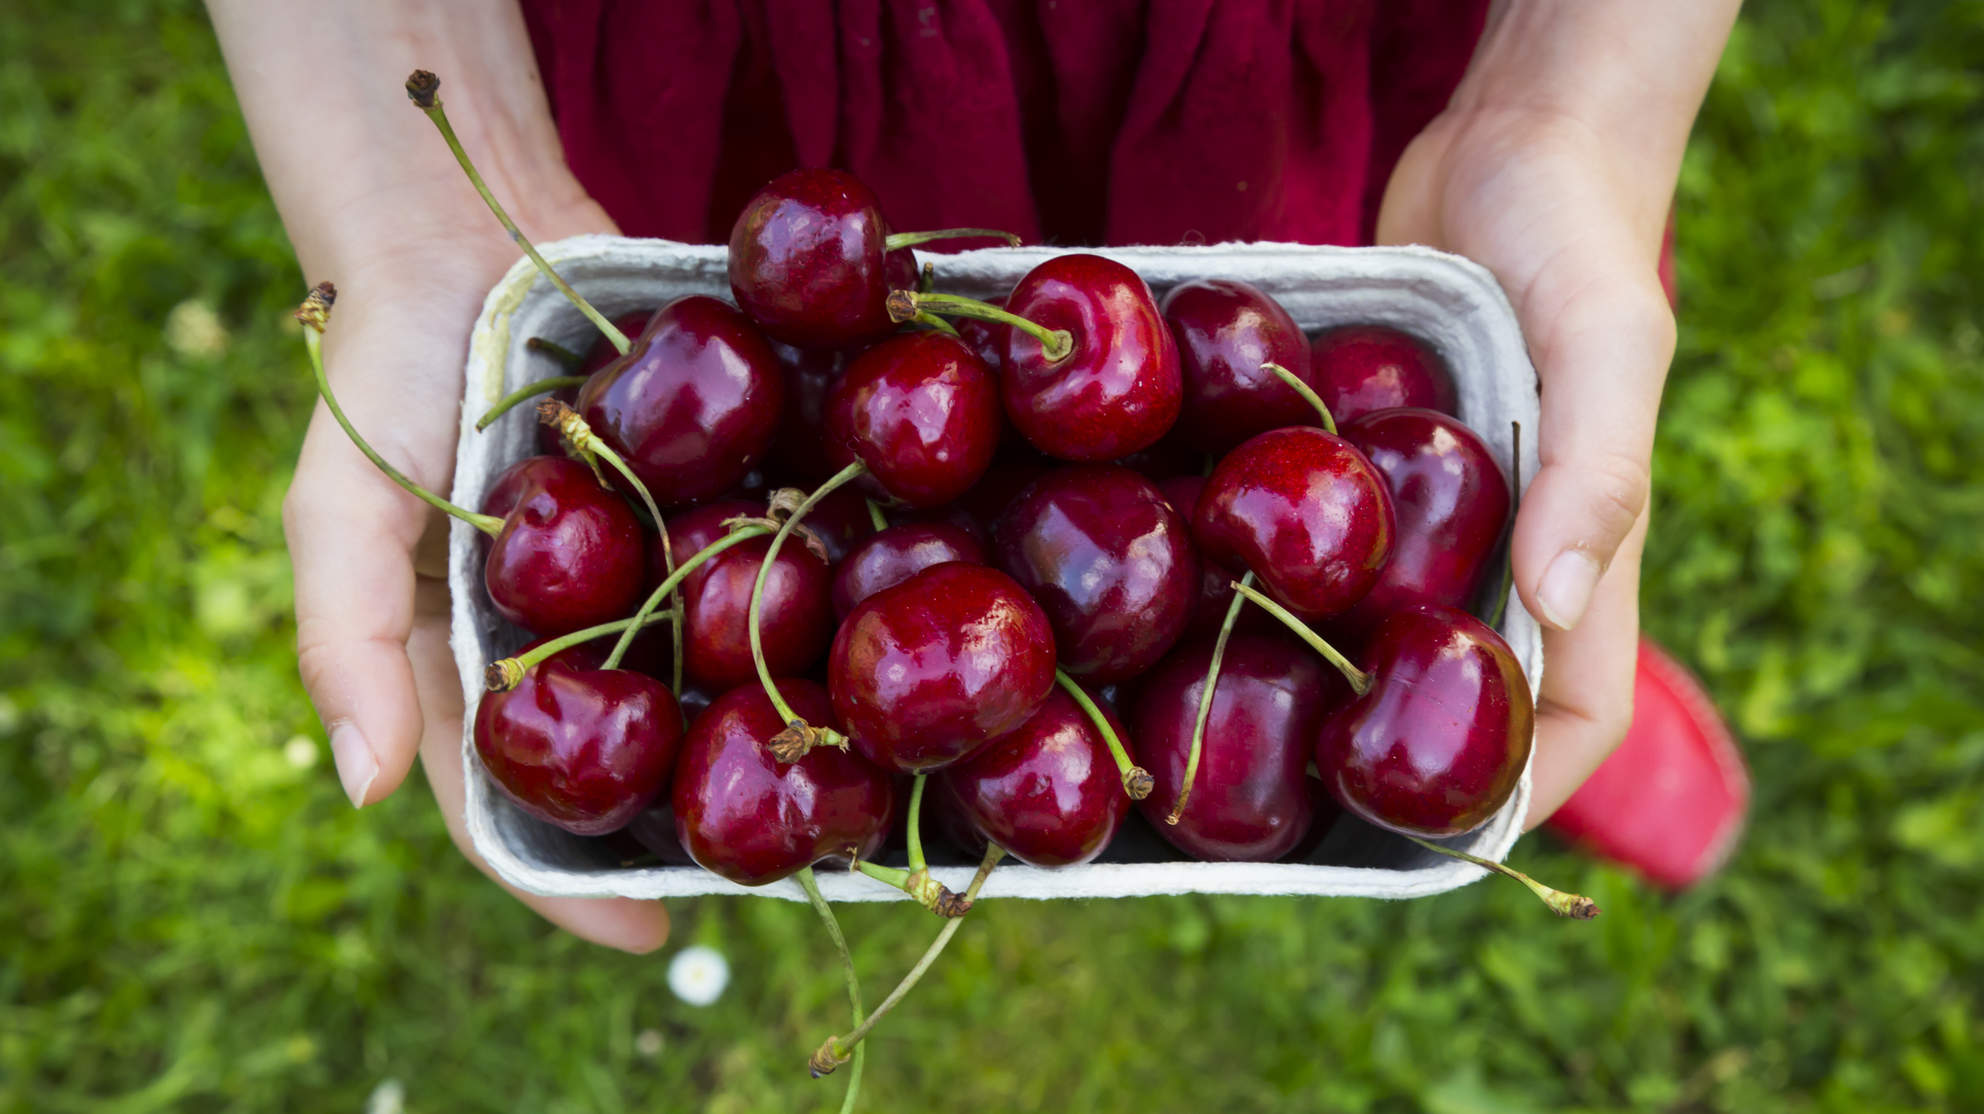 cherries-healthy-food-GettyImages-748342321.jpg